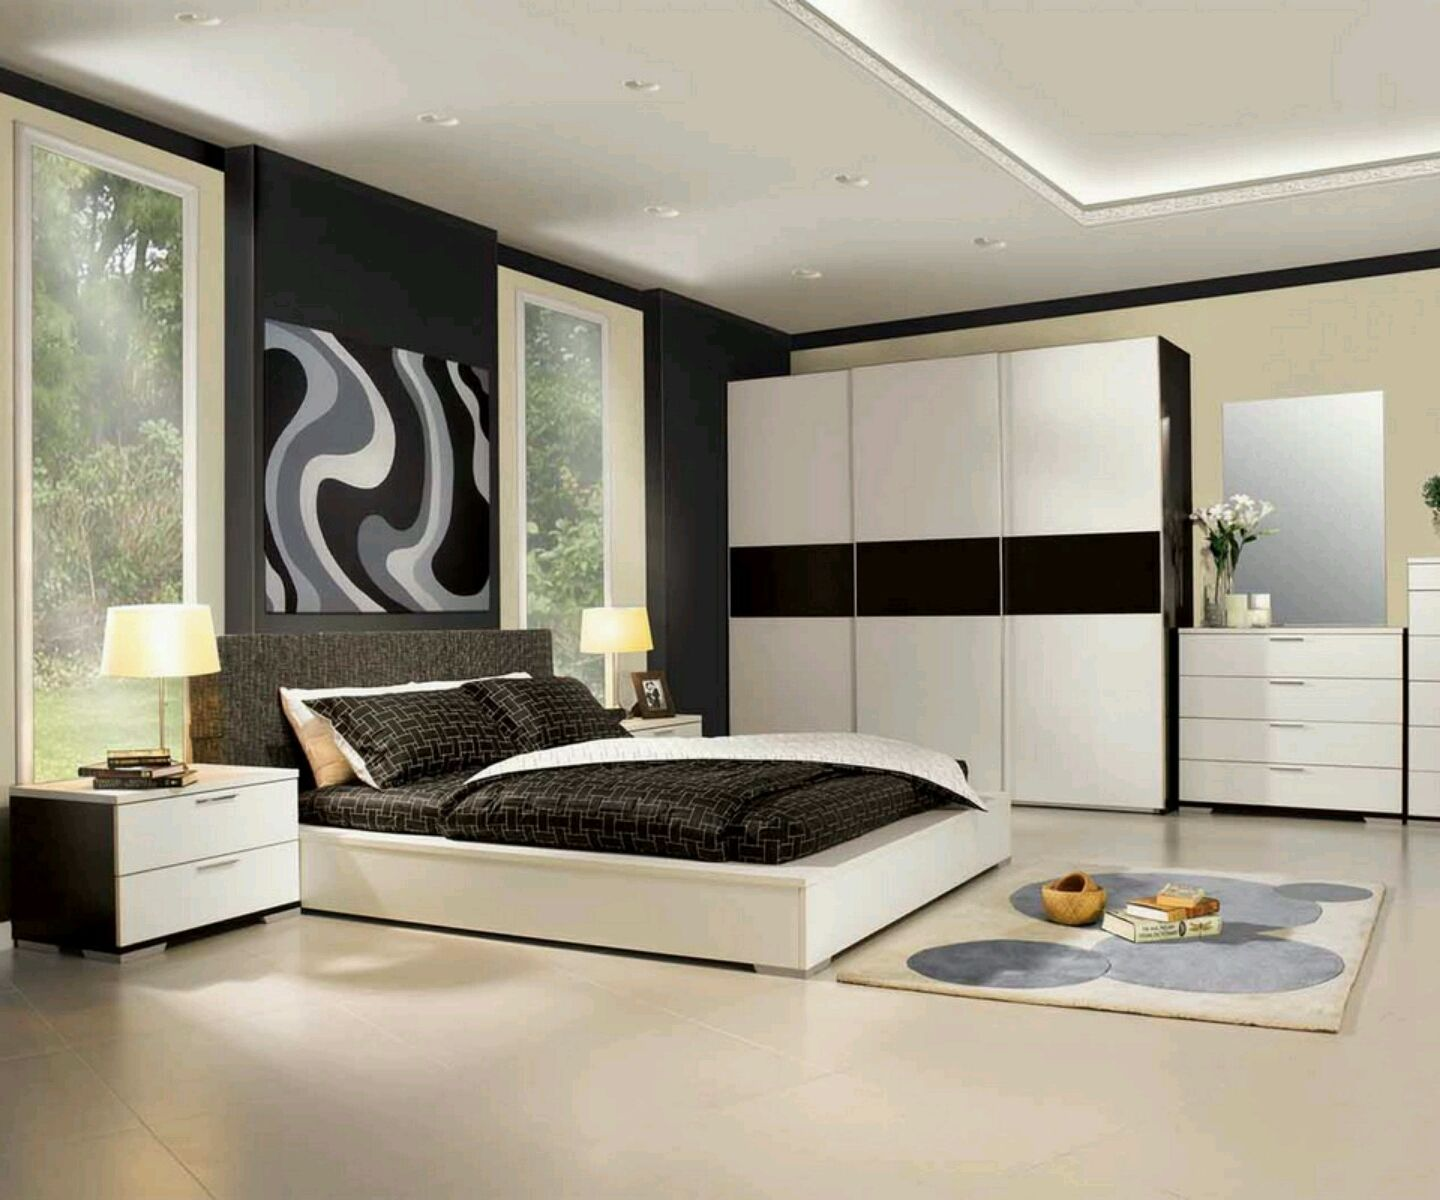 latest cool furniture. Latest Bedroom Furniture Designs. Modern Design For More Pictures And Ideas, Please Cool G